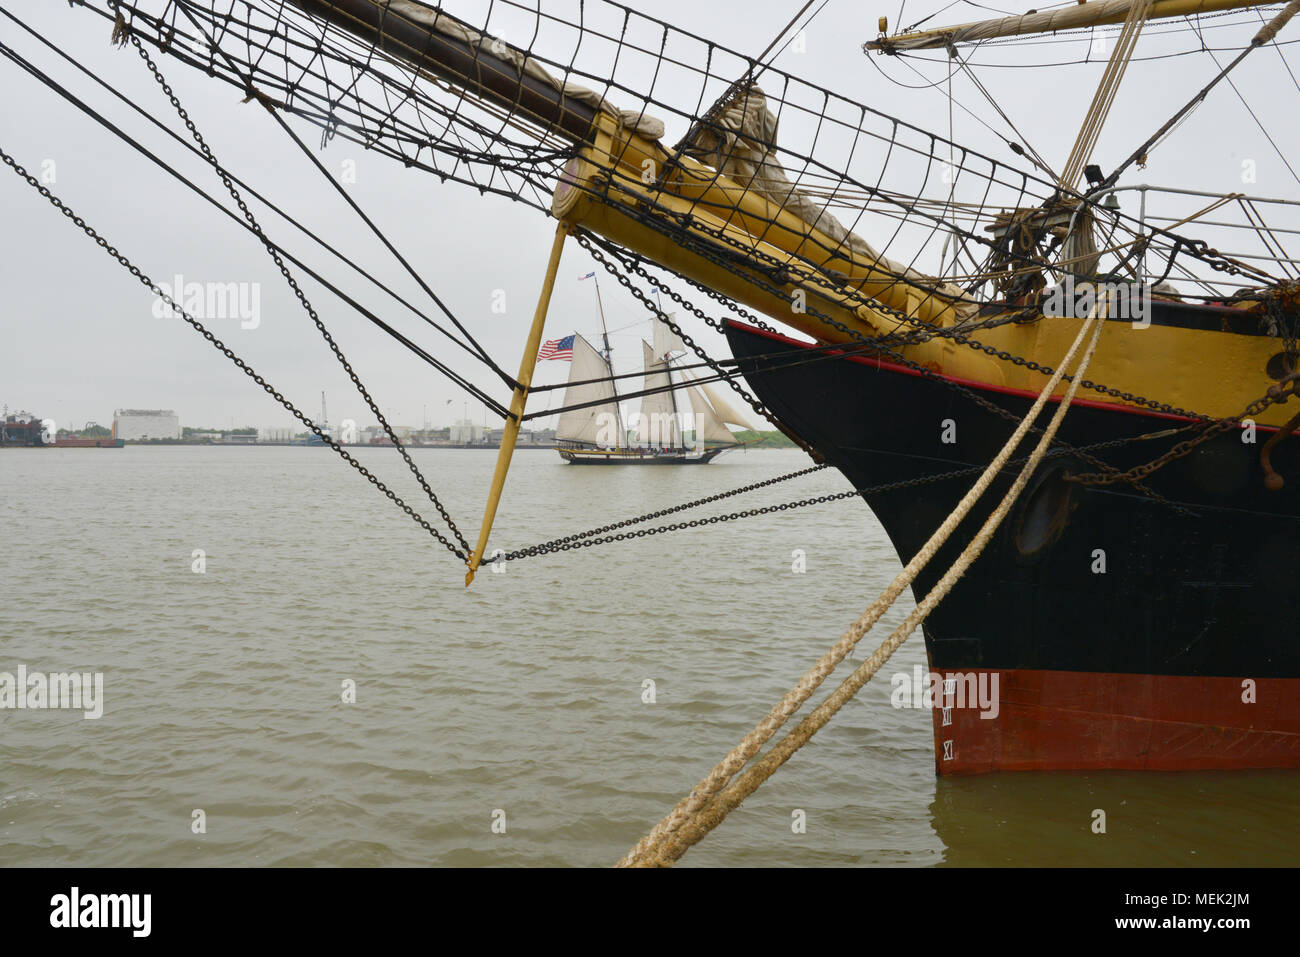 Tall Ships at the Tall Ships Festival in Galveston, Texas - Stock Image